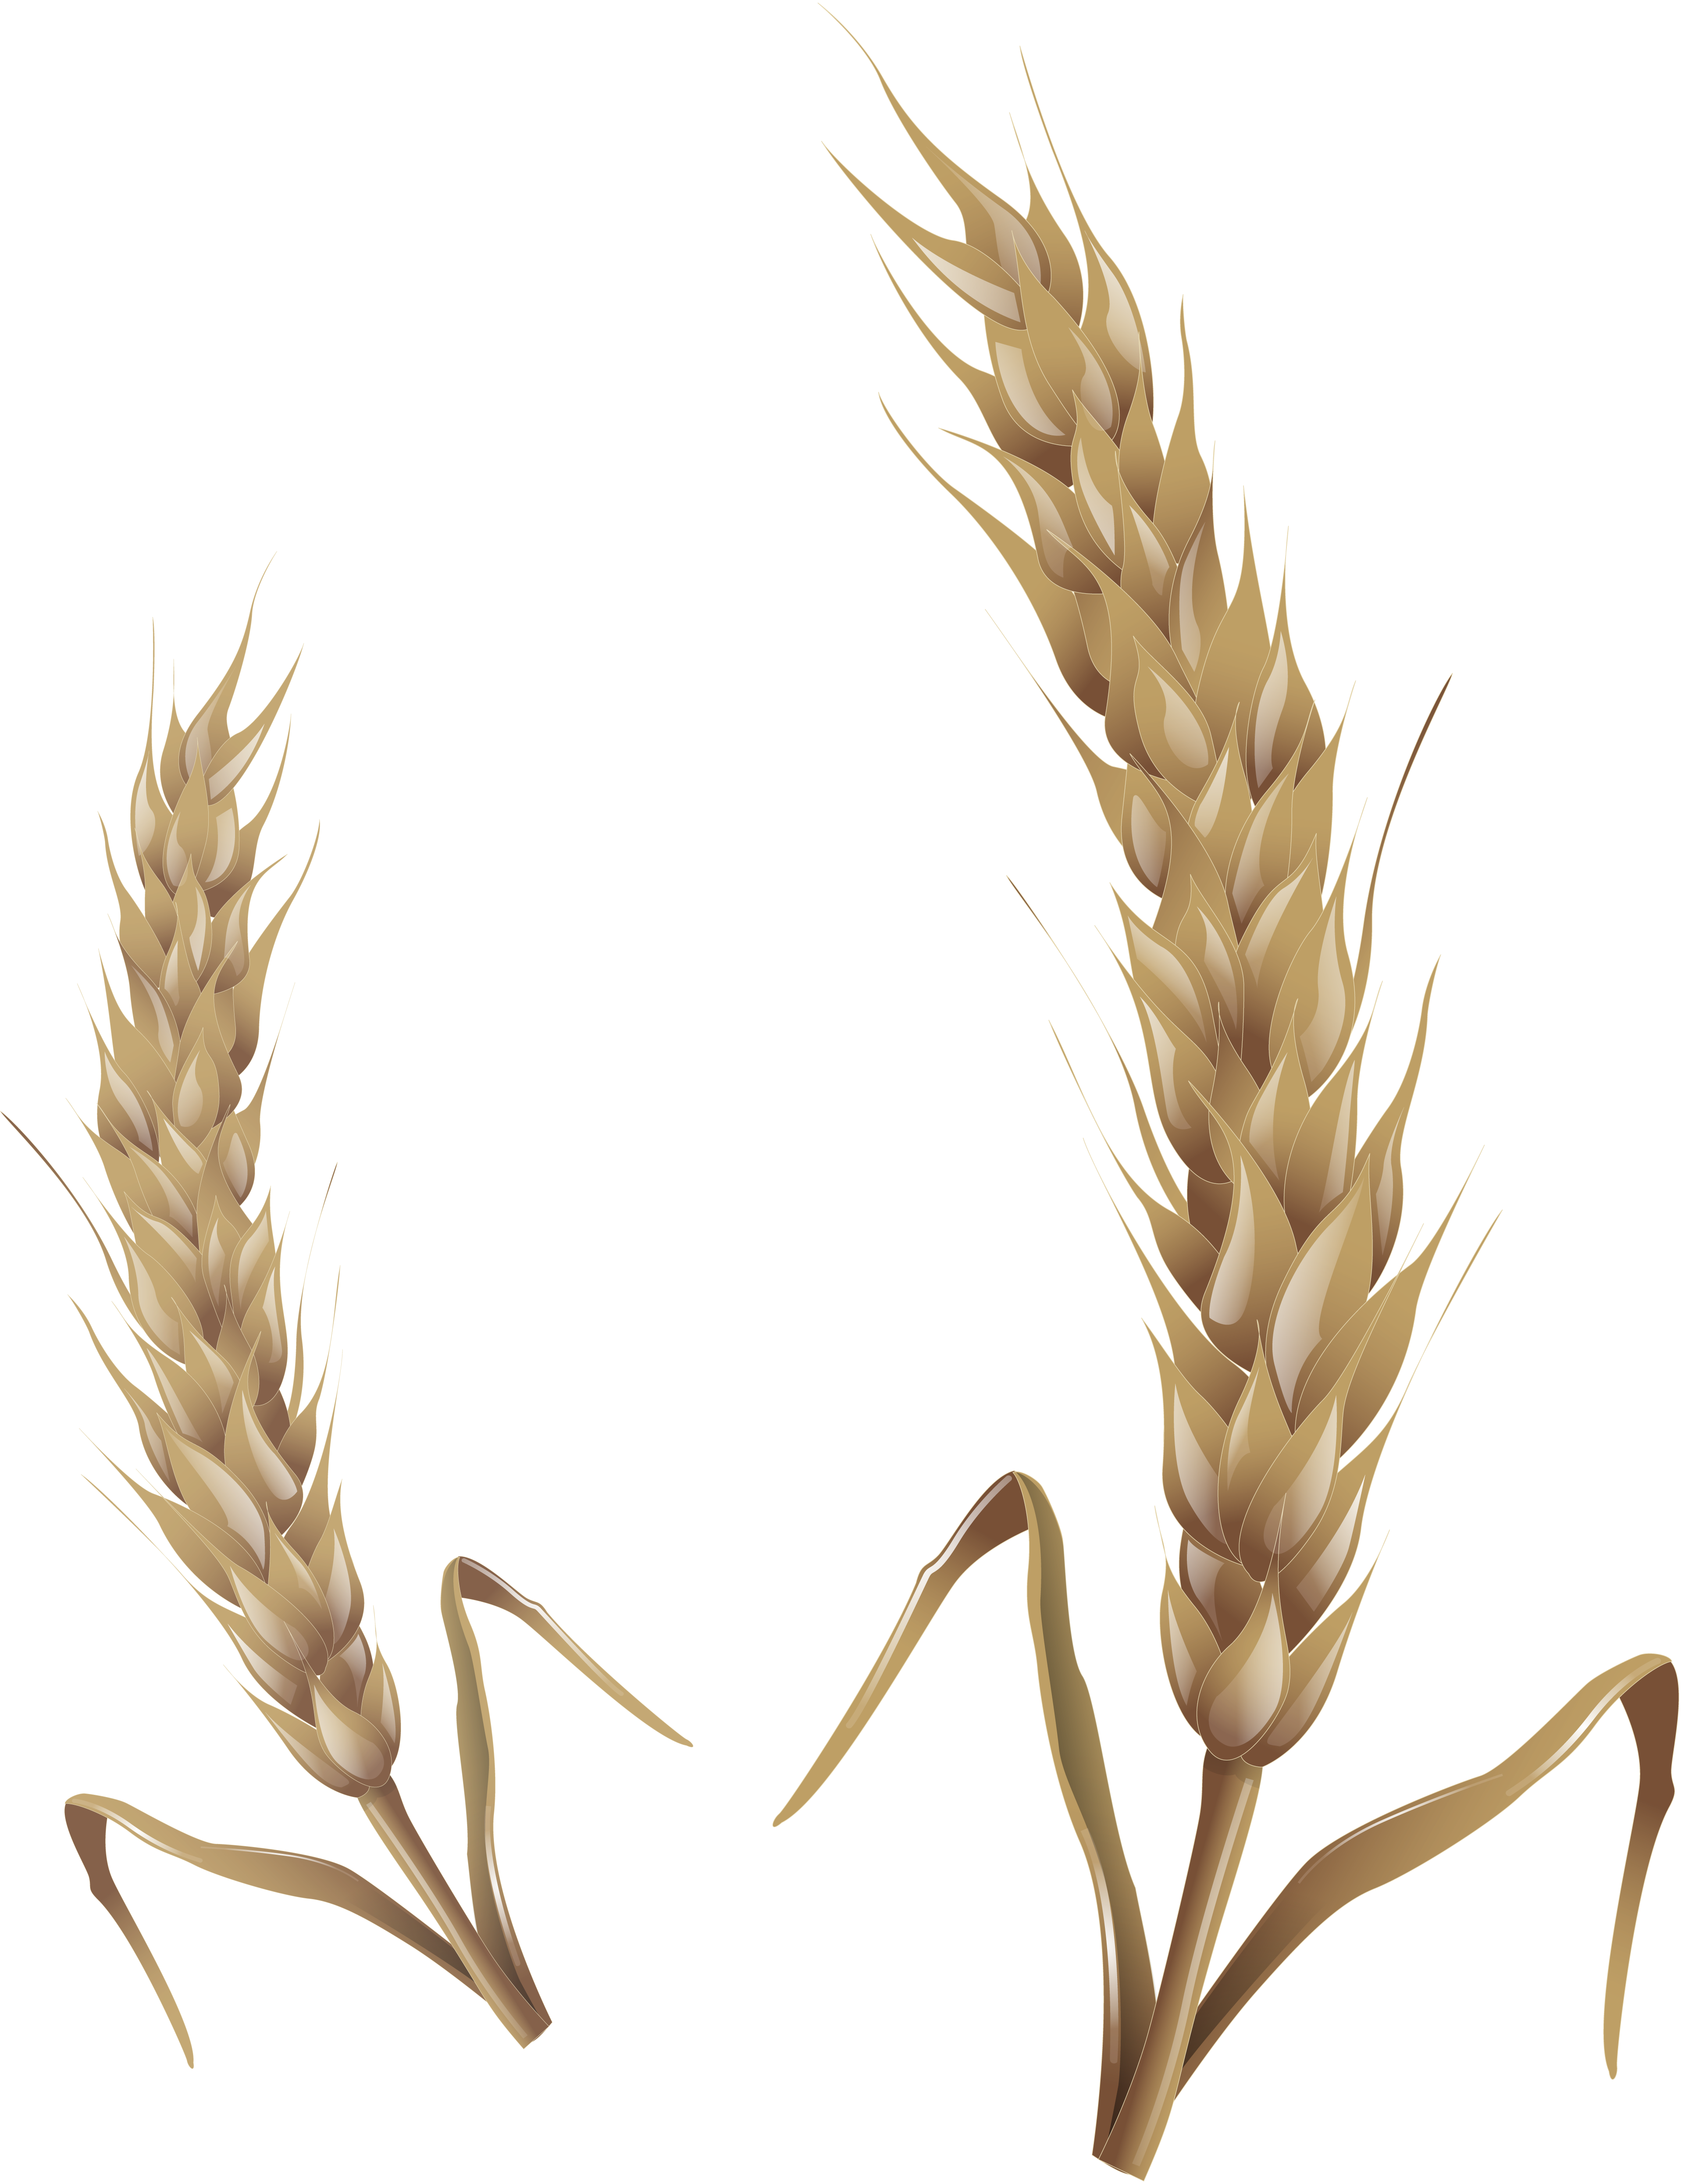 Wheat clipart rye. Png image purepng free